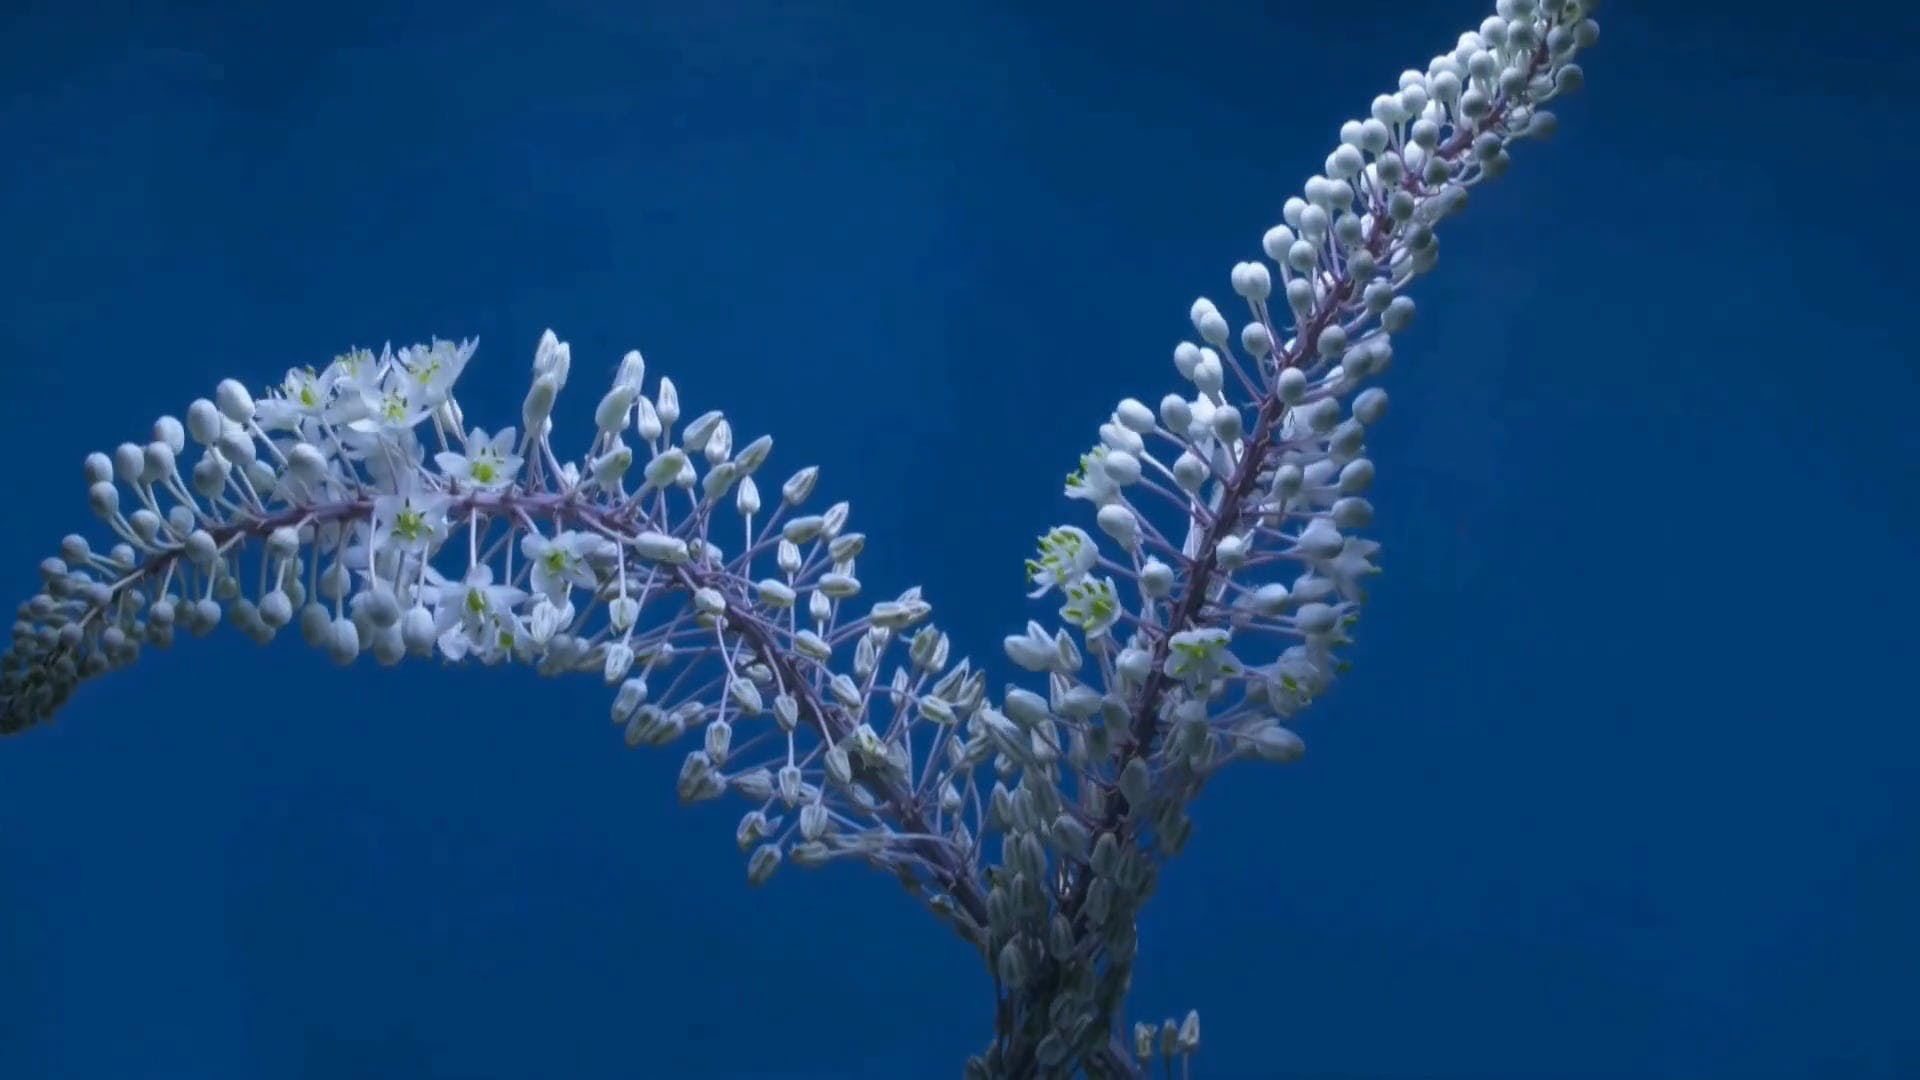 Time Lapse Video Of Flower Blooming